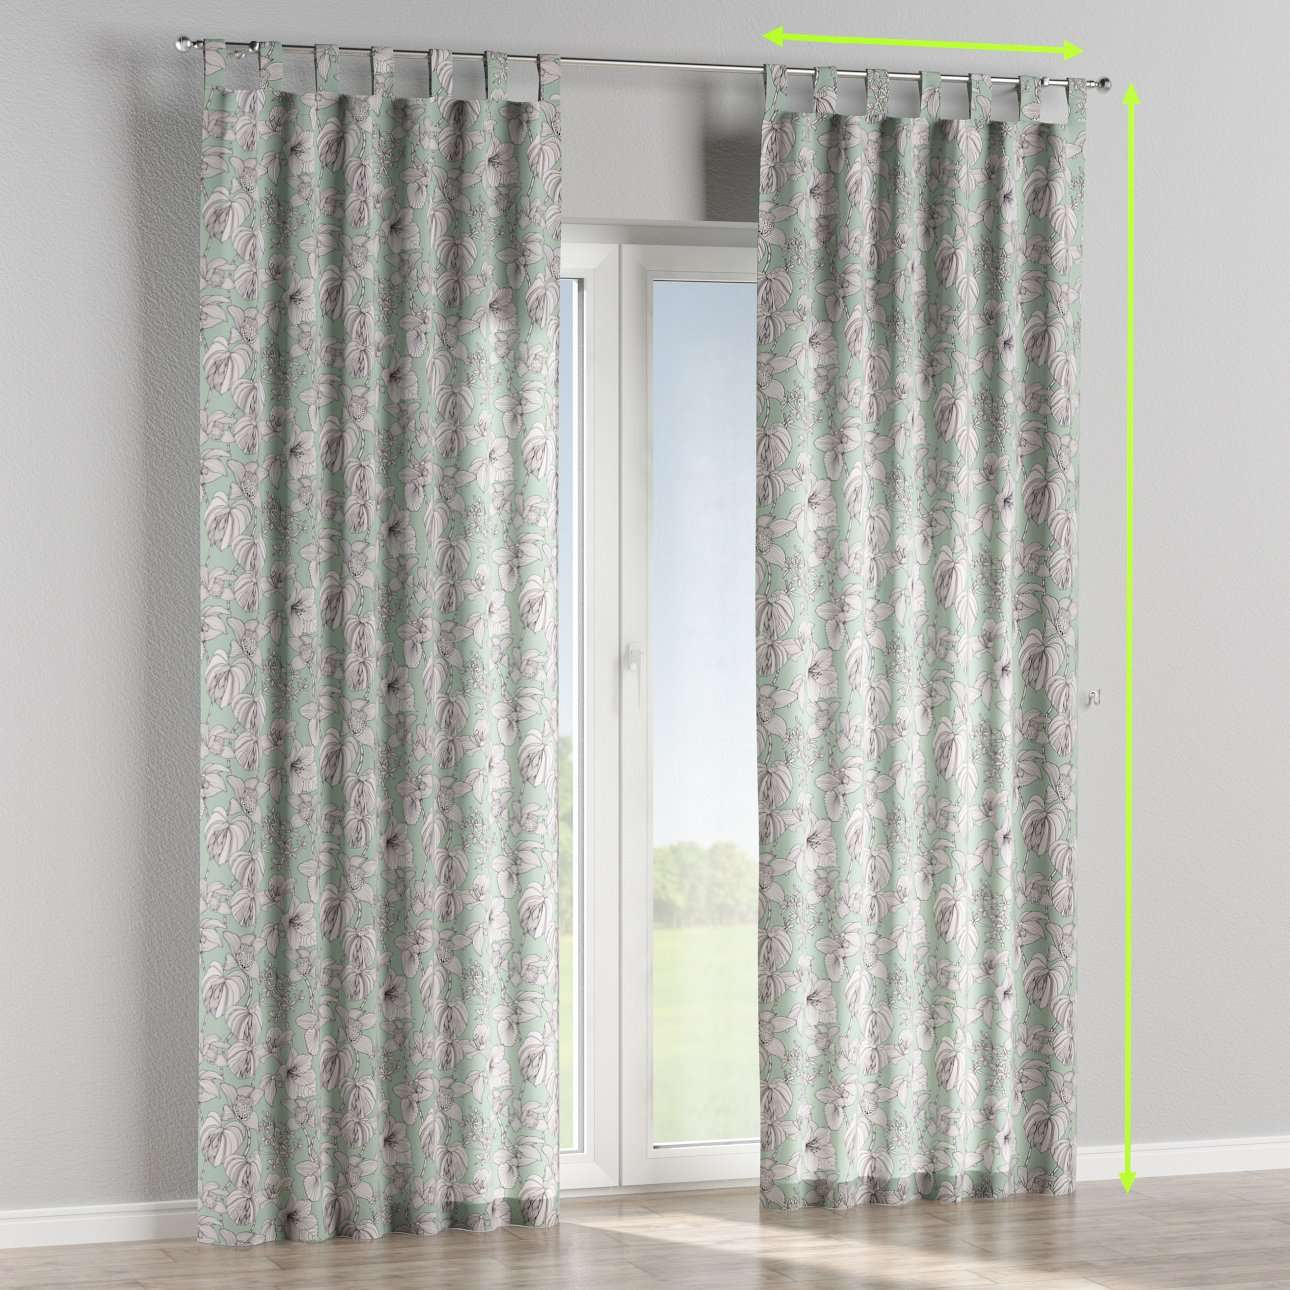 Tab top curtains in collection Brooklyn, fabric: 137-76